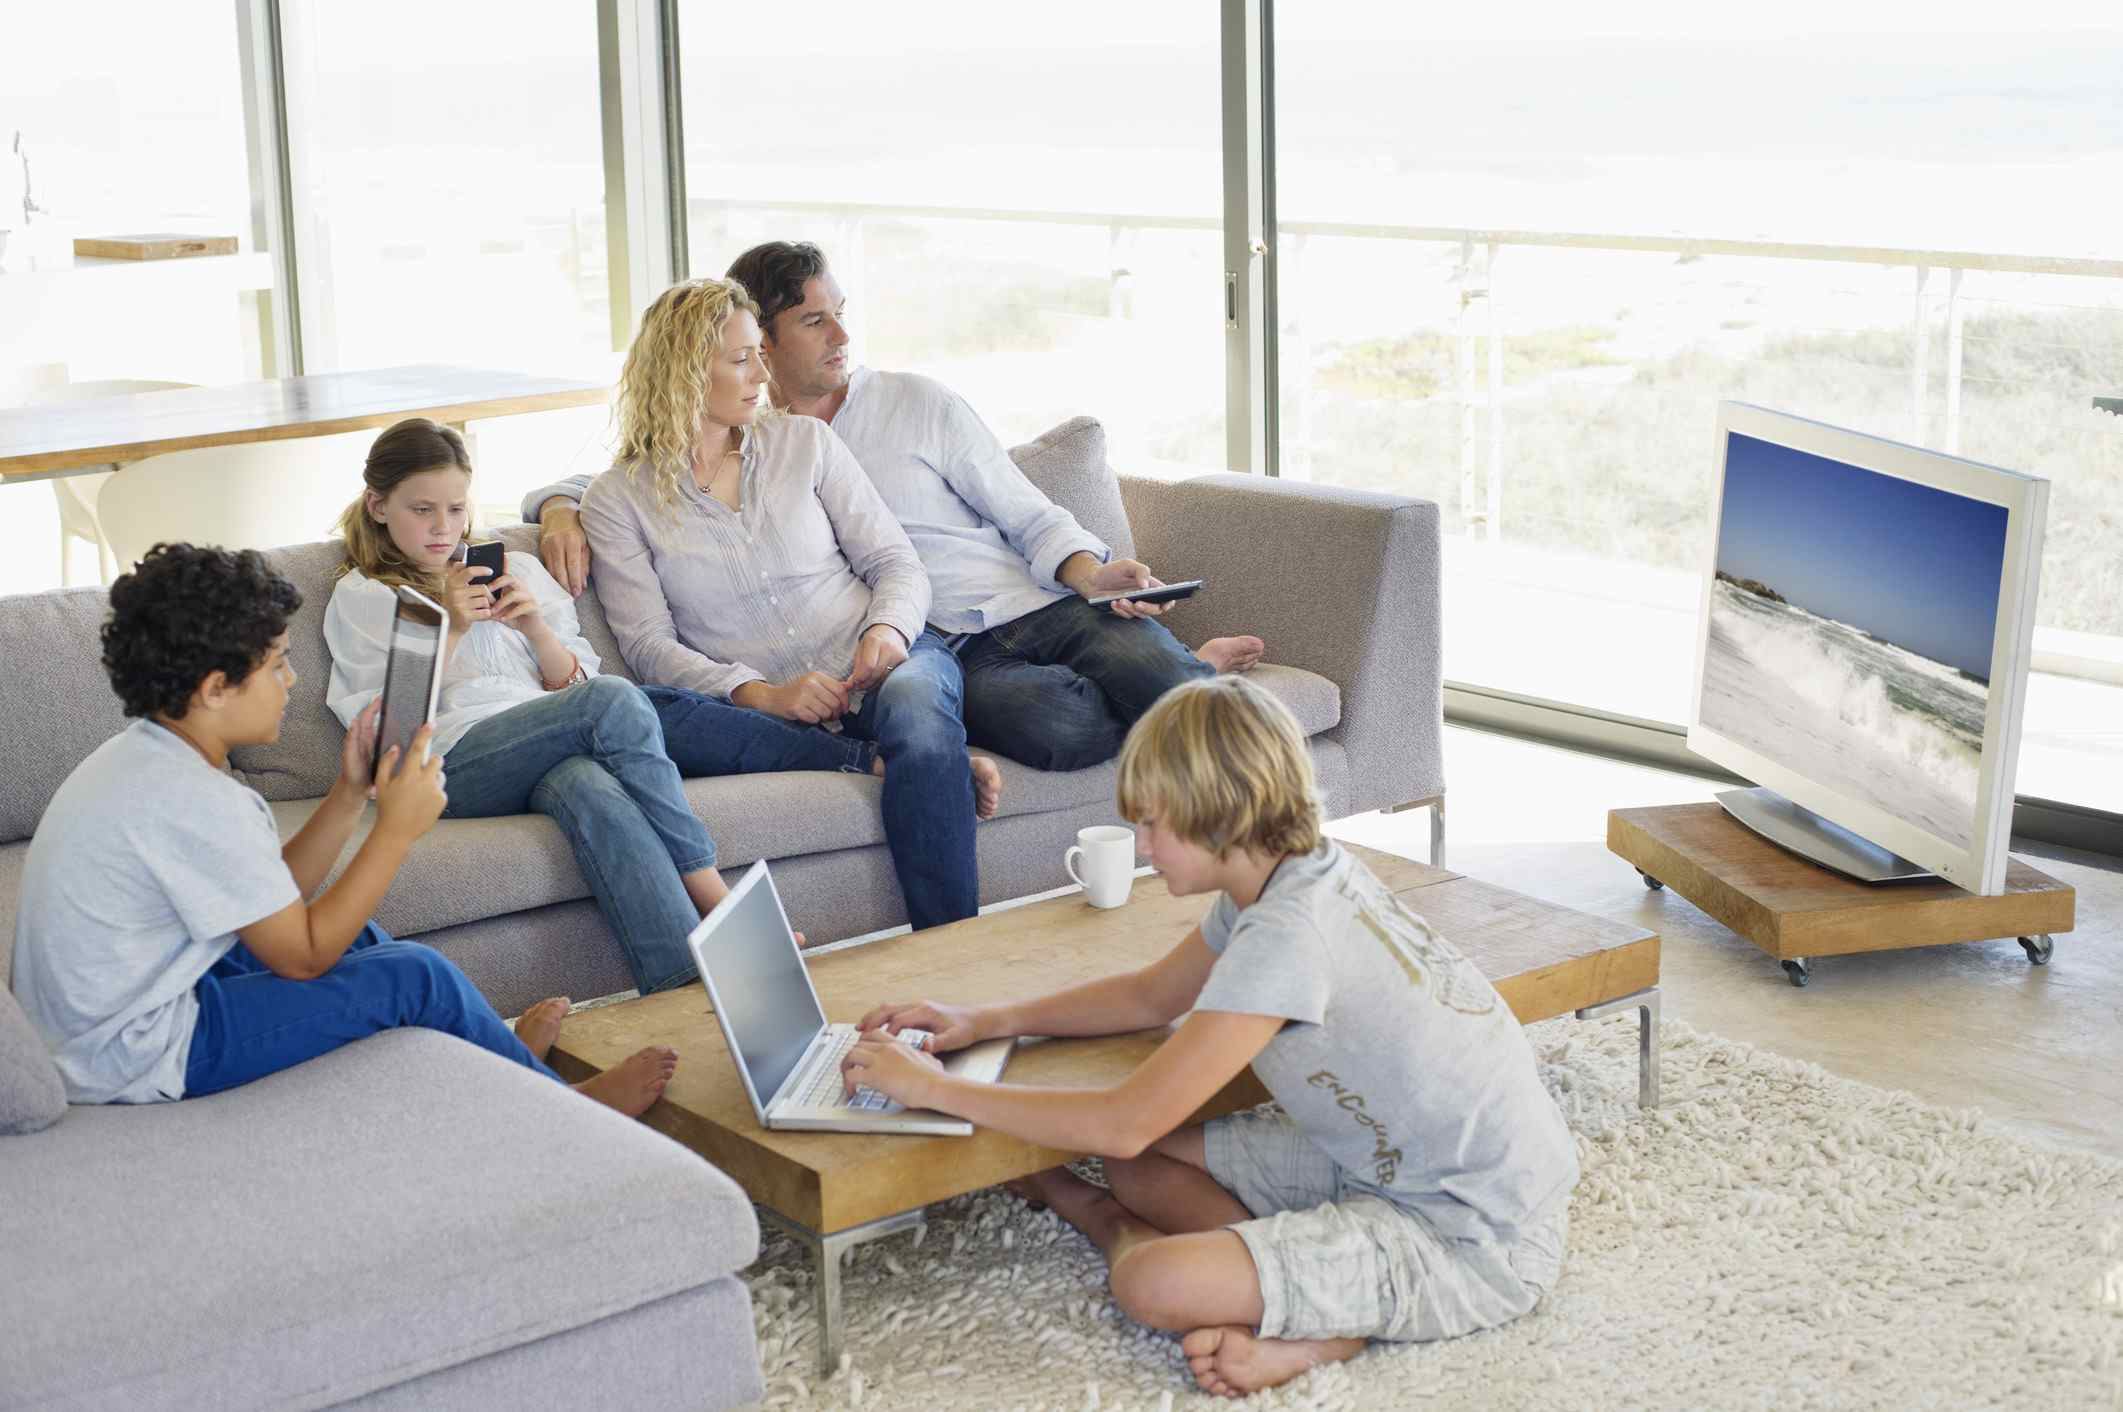 family with TV and technology